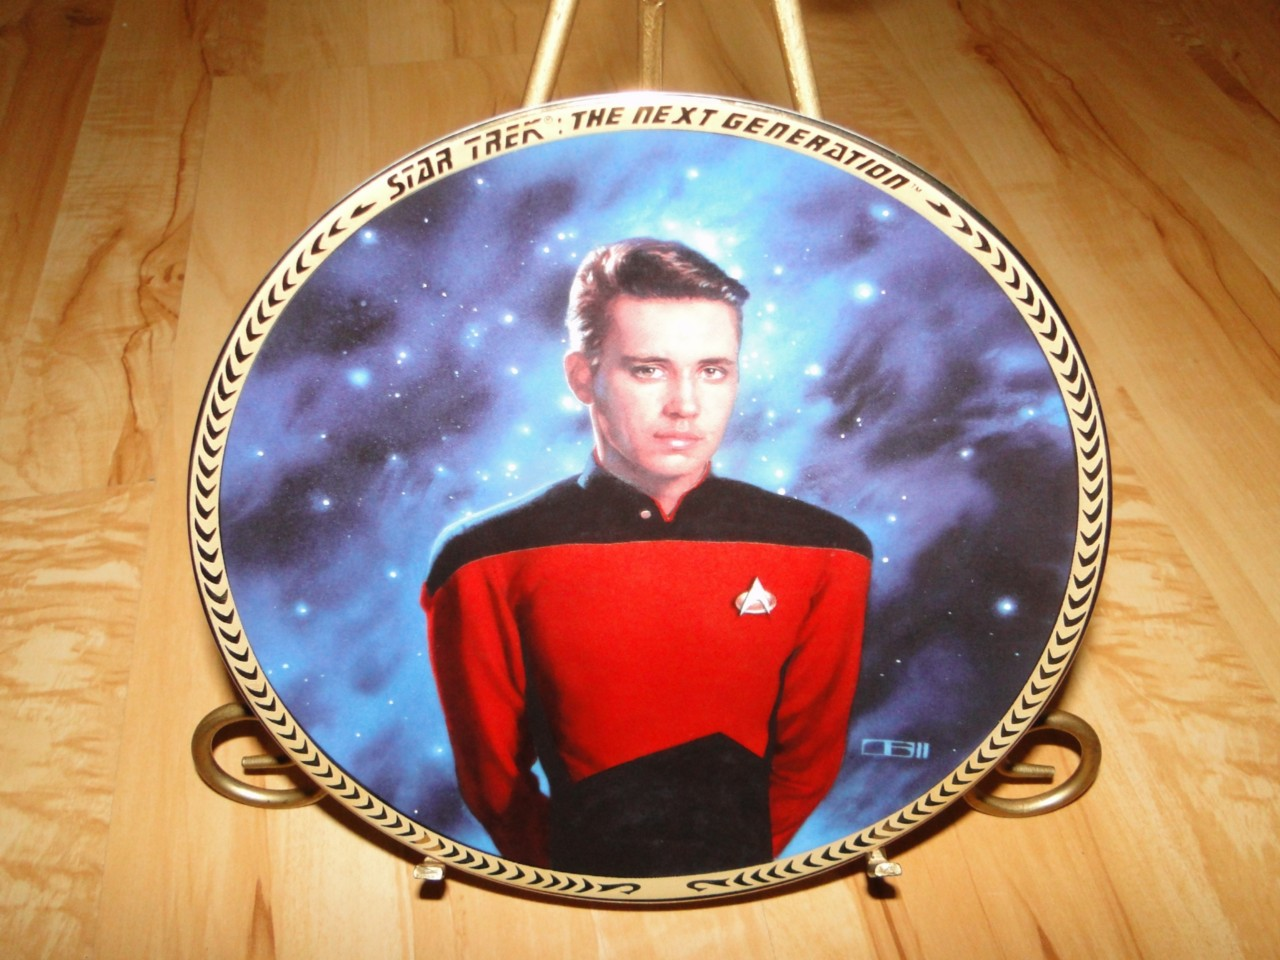 Take Home This Great Collectible Plate Today. Also, Would Make A